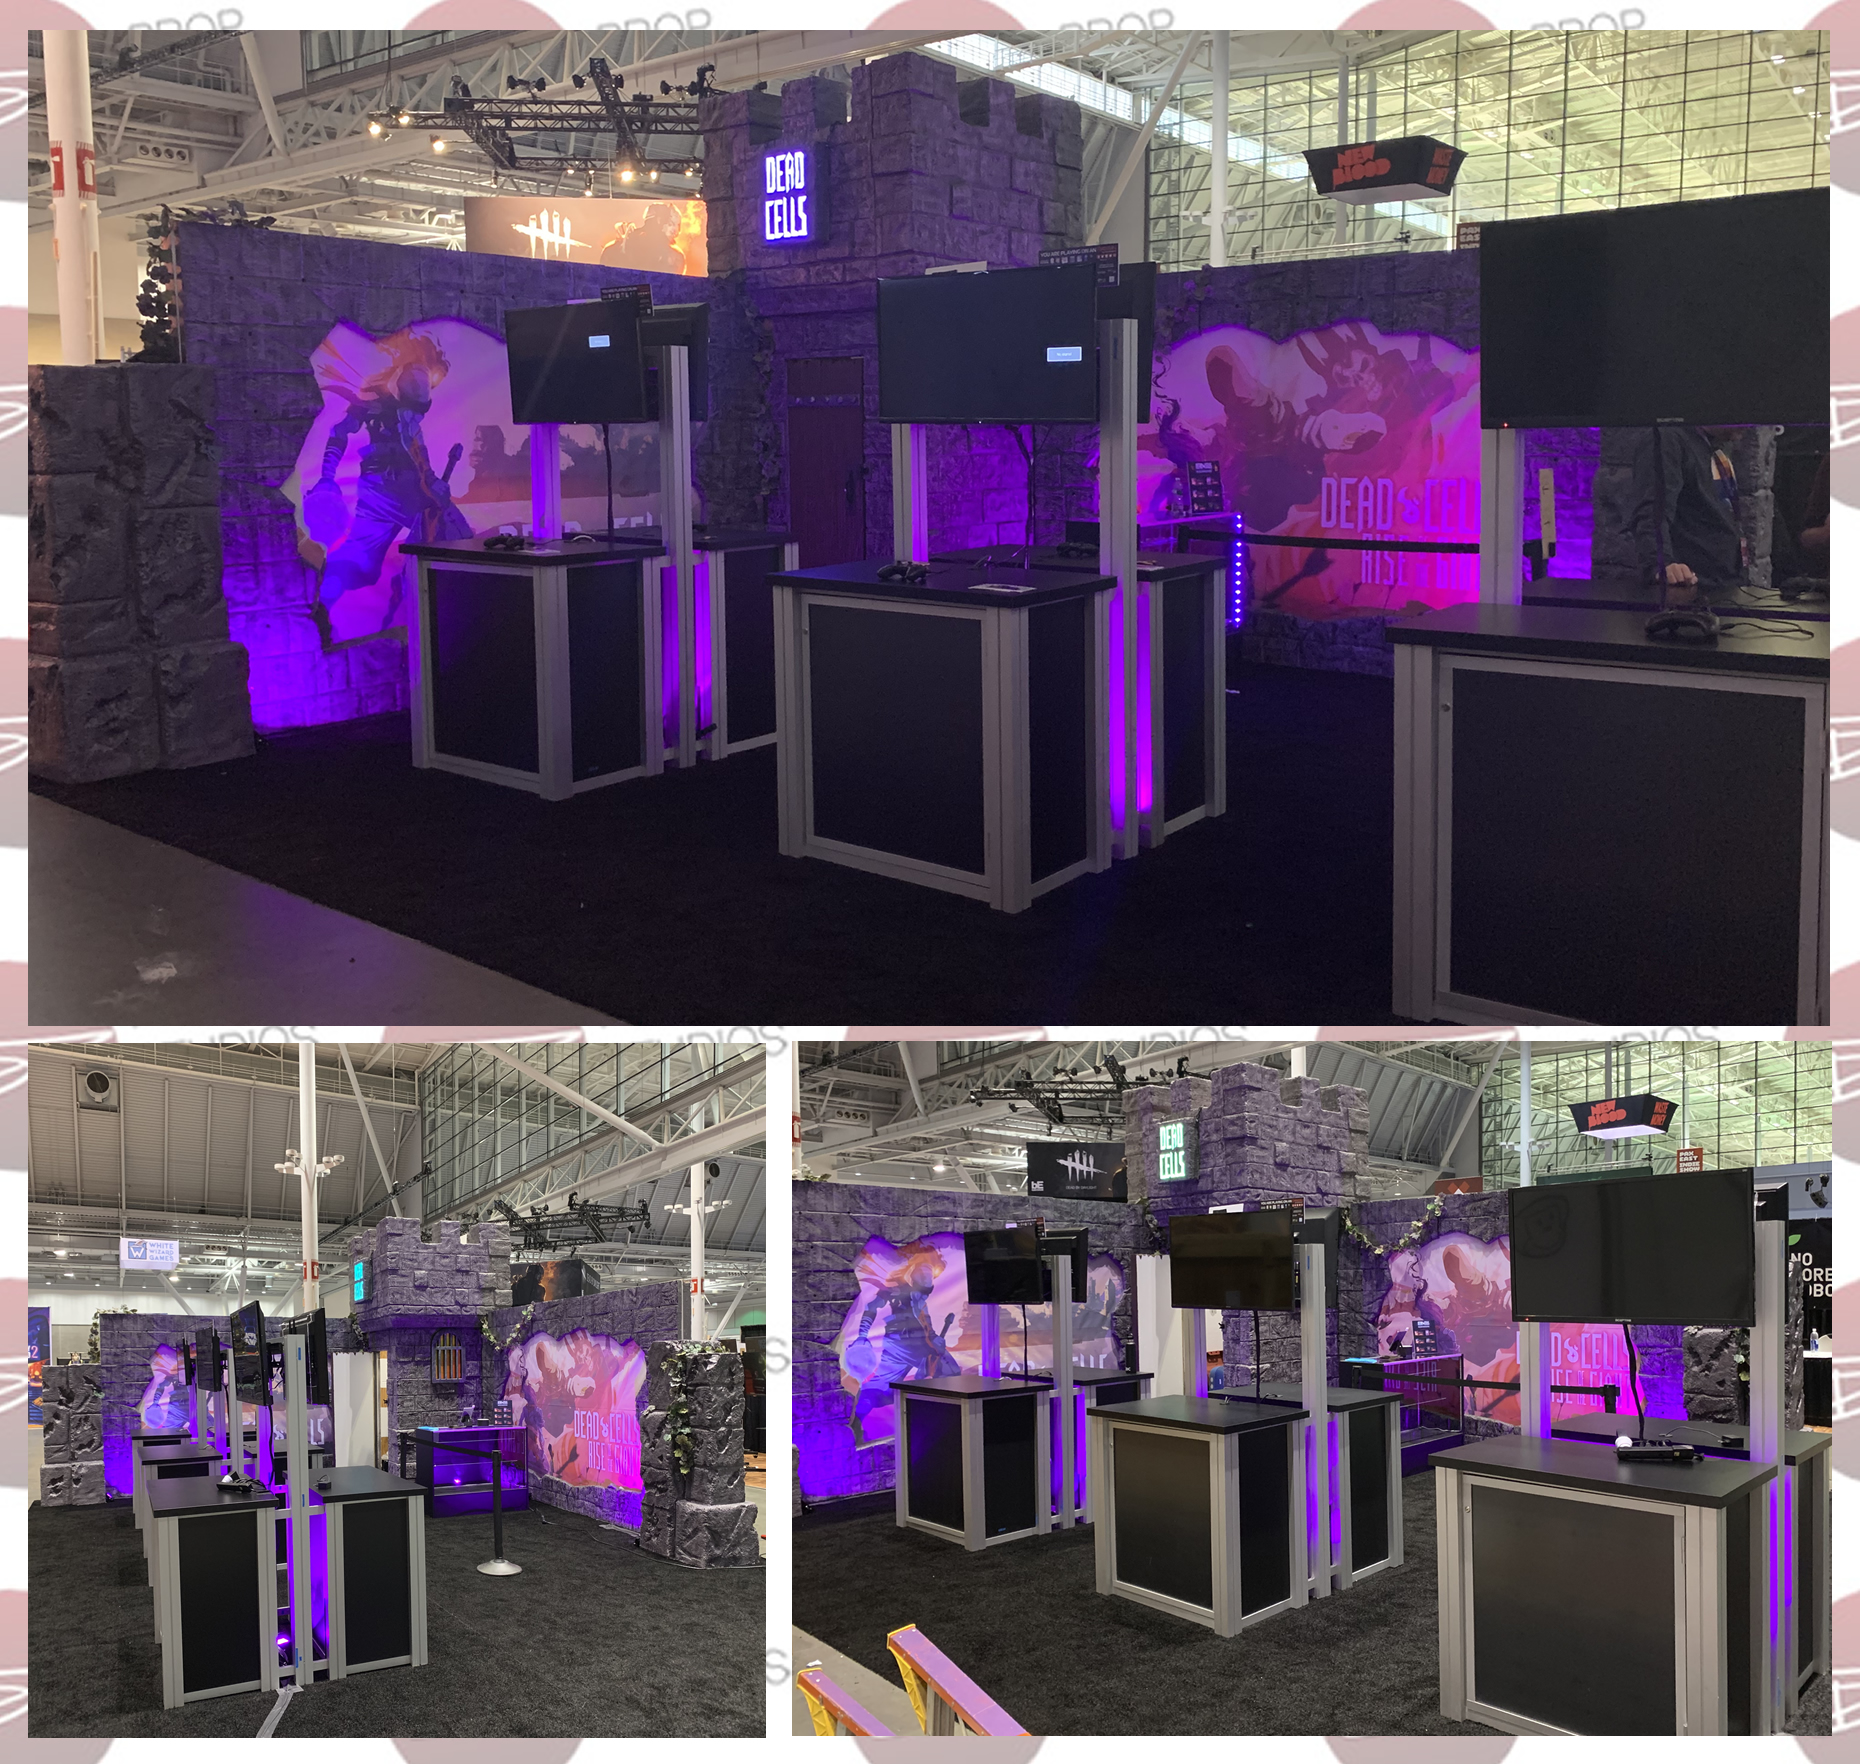 Dead Cells Castle for PAX East 2019 Tradeshow and Exhibit